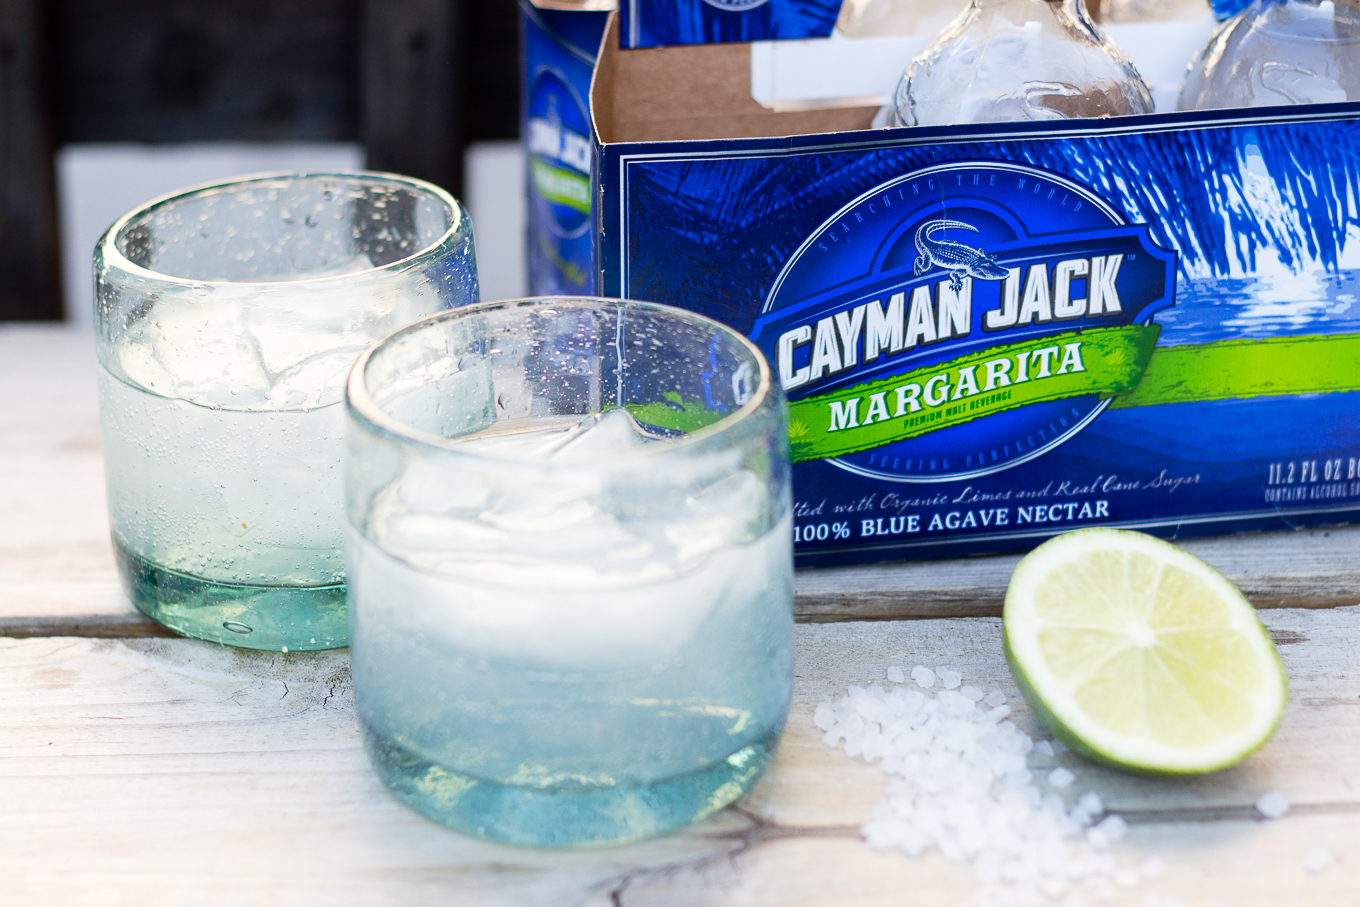 cinco de mayo, cayman jack, margarita, how to celebrate cince de mayo, how to make margaritas